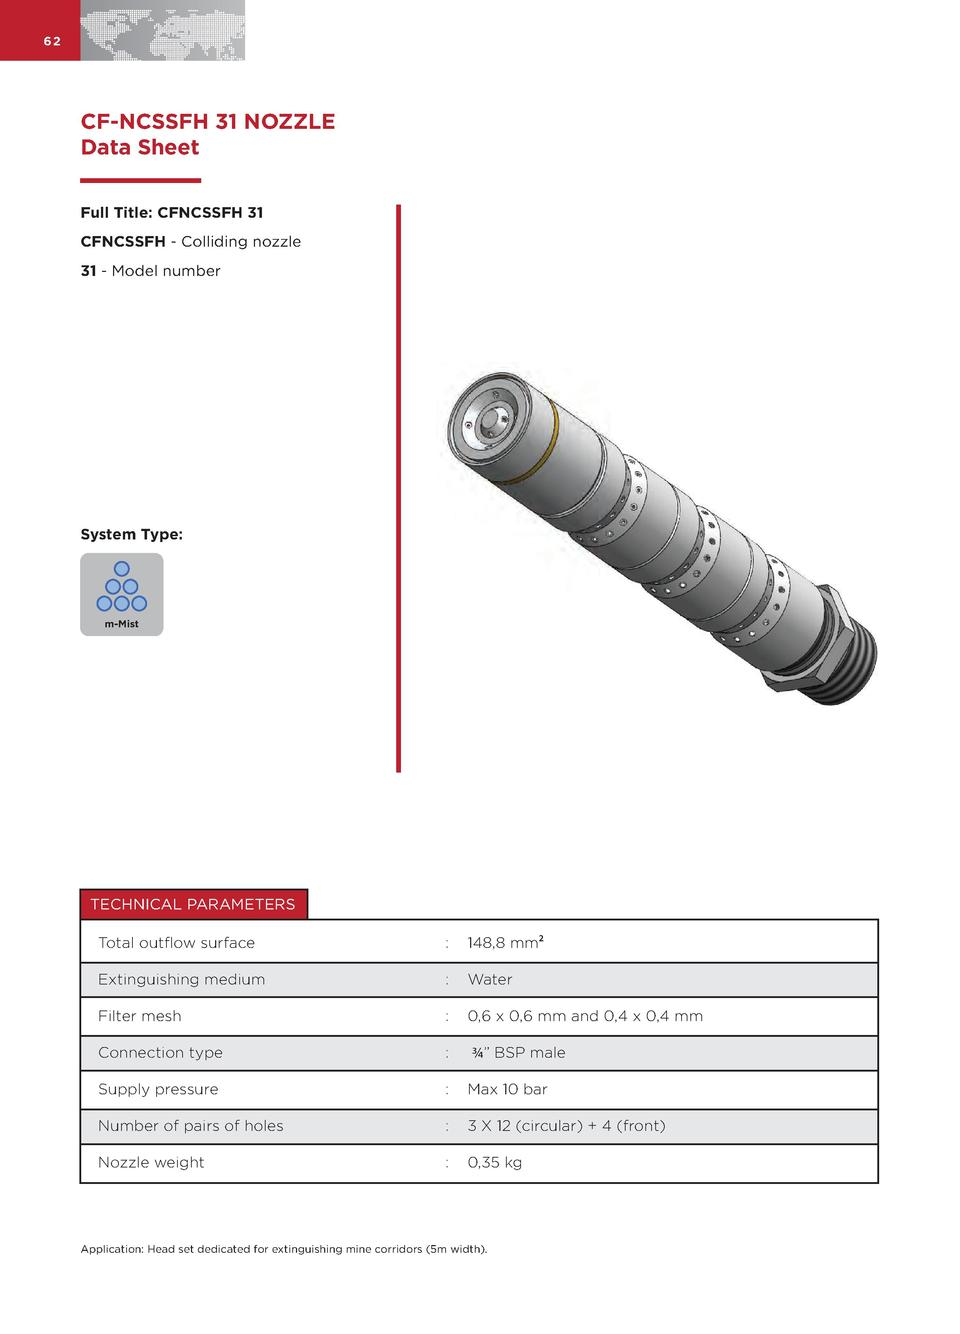 62  CF-NCSSFH 31 NOZZLE Data Sheet Full Title  CFNCSSFH 31 CFNCSSFH - Colliding nozzle 31 - Model number  System Type   m-...